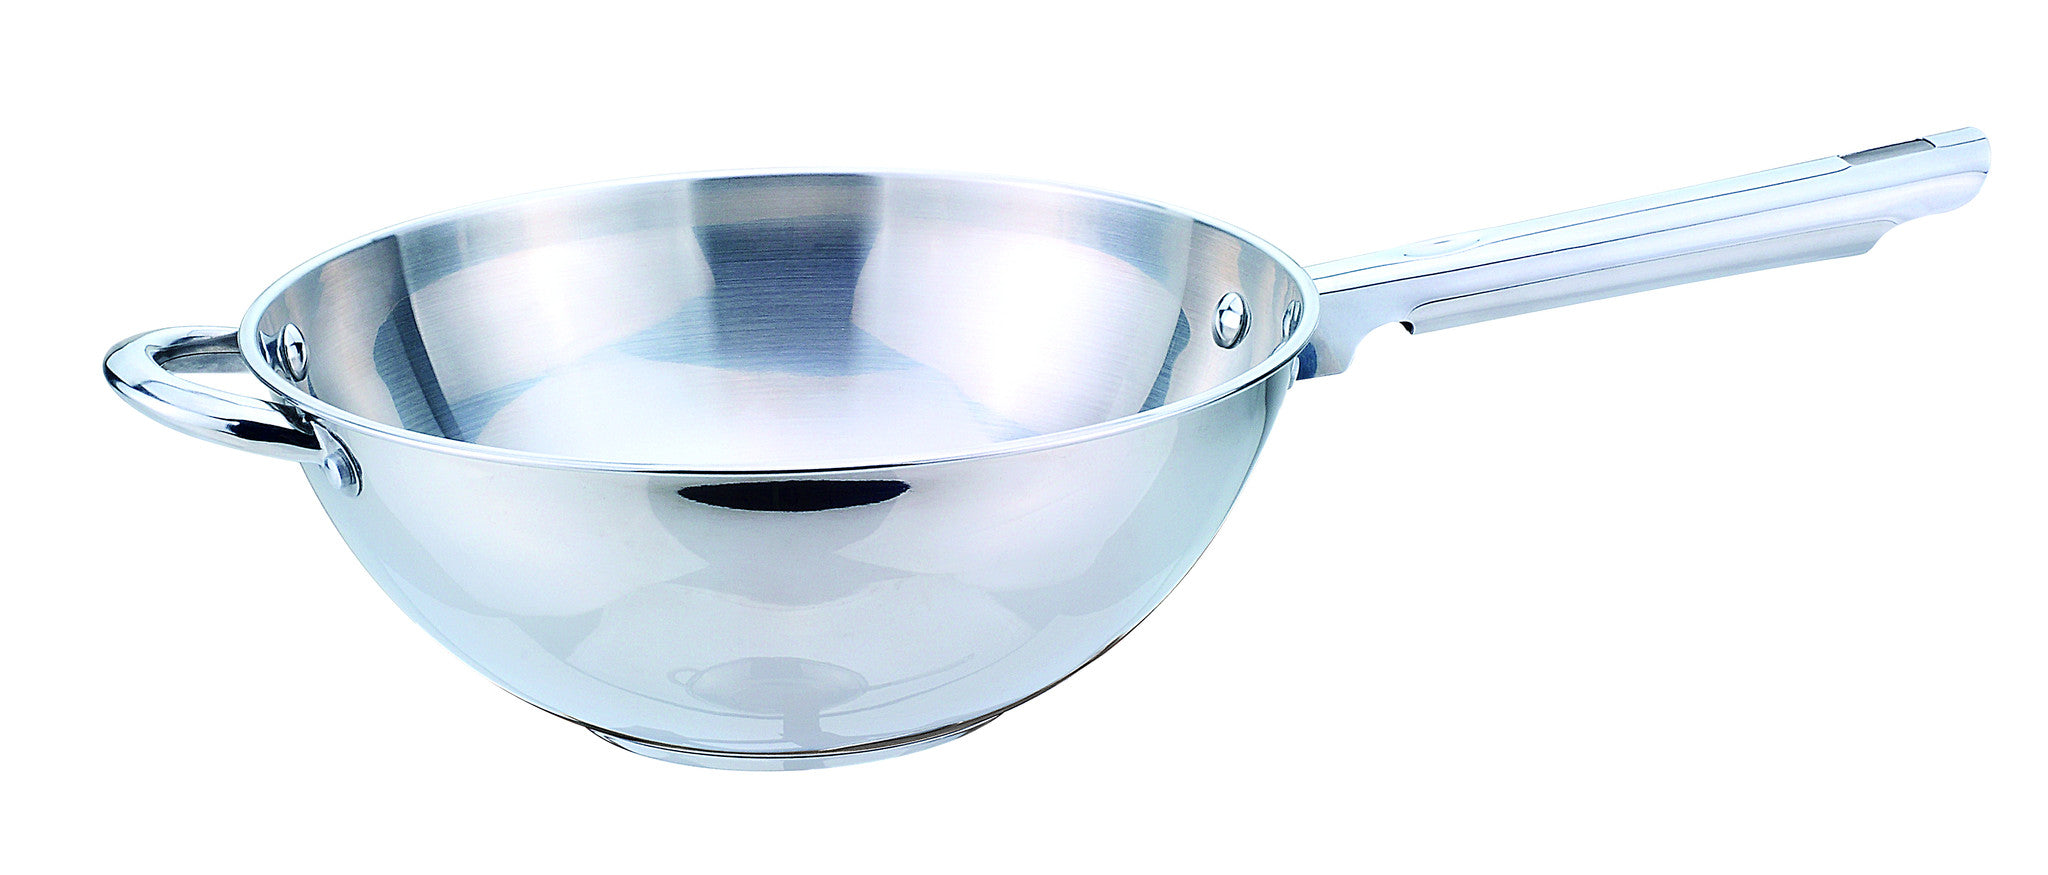 Sabichi 26cm Essential Wok with No Lid-93806 - Homely Nigeria